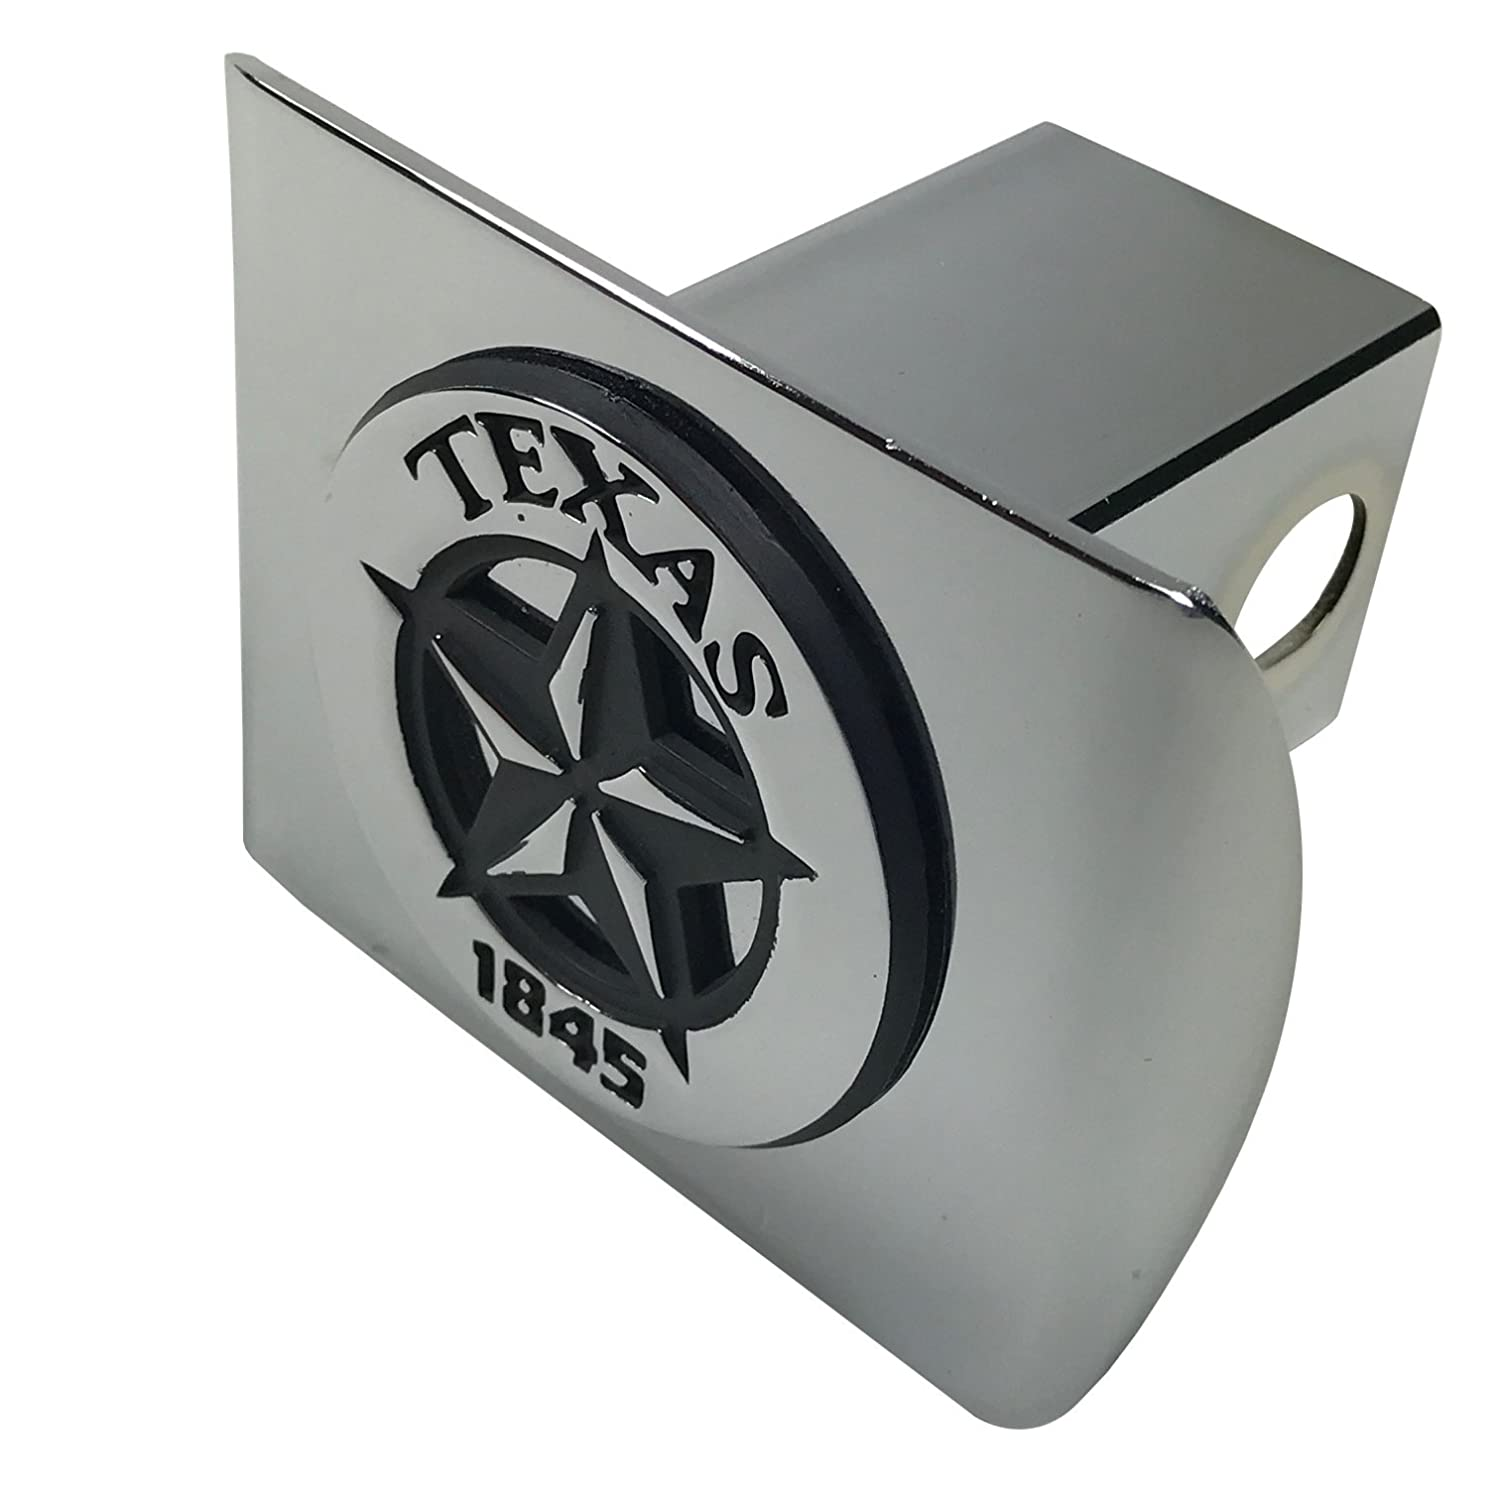 Texas State Star 1845 METAL Emblem on Chrome METAL Hitch Cover AMG